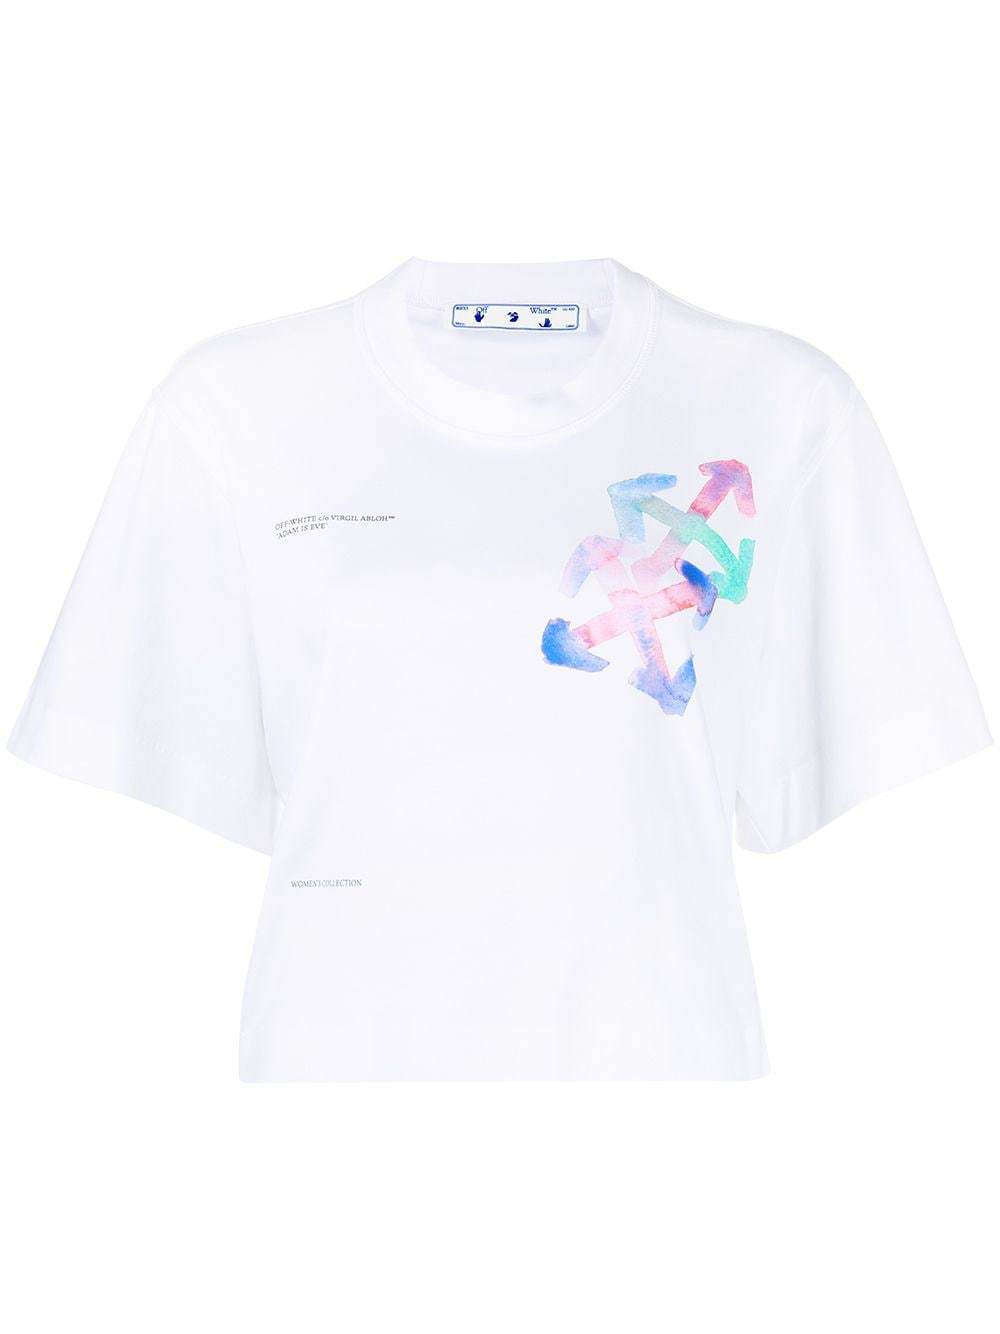 OFF WHITE WOMEN Watercolour Arrows Cropped T-shirt White